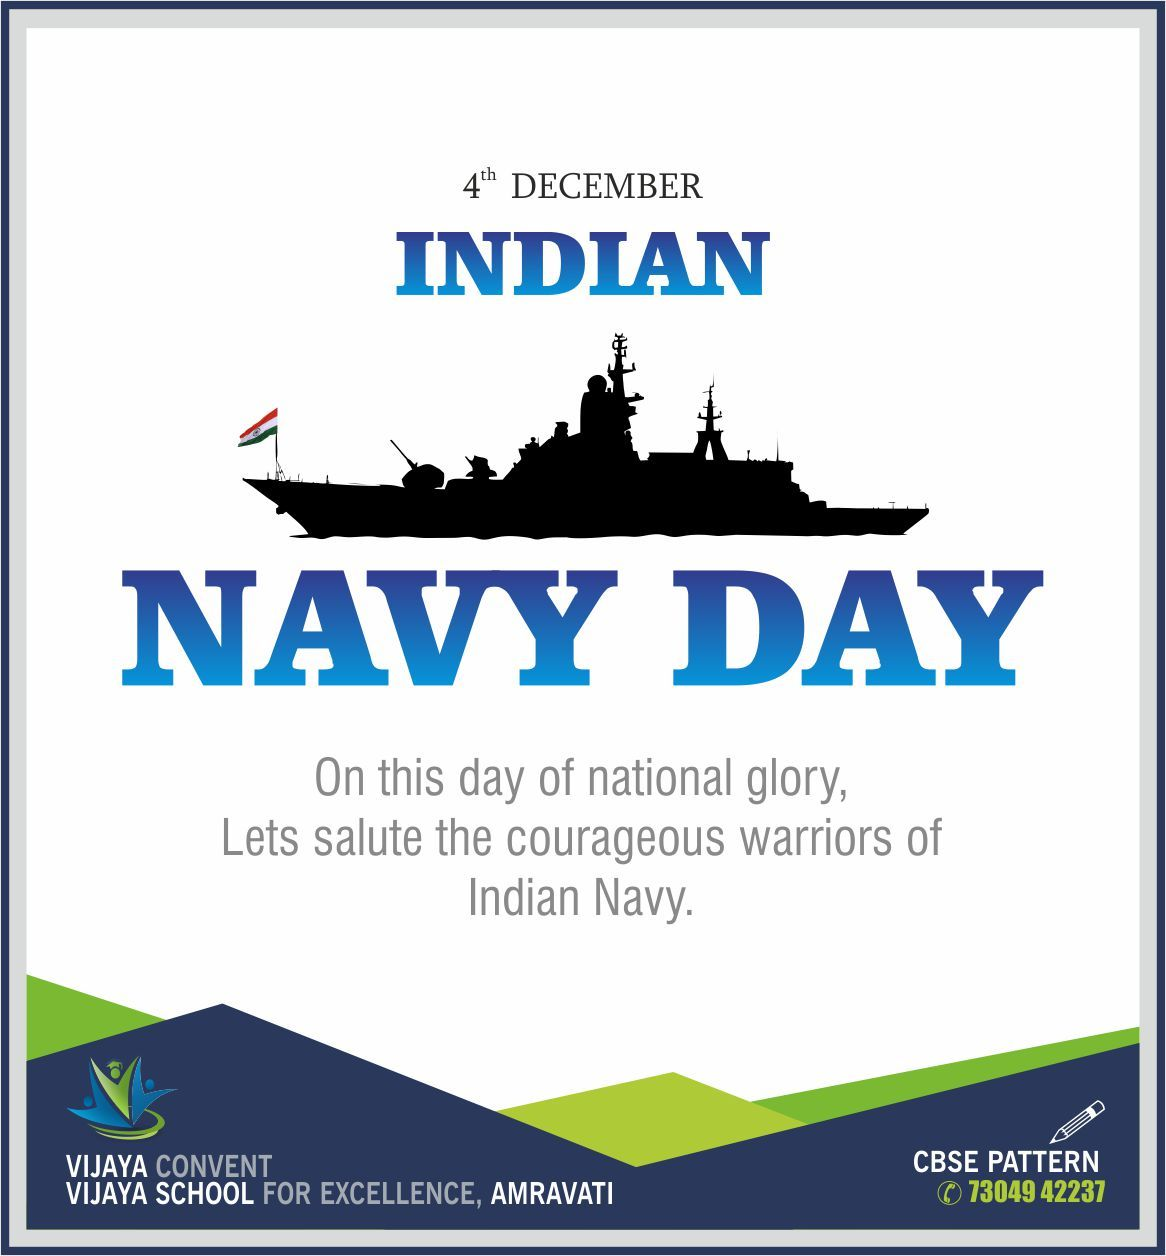 Indian Navy Day On This Day Of National Glory Let S Salute The Courageous Warriors Of The Indian Navy Vijaya Conven Indian Navy Day Navy Day Indian Navy